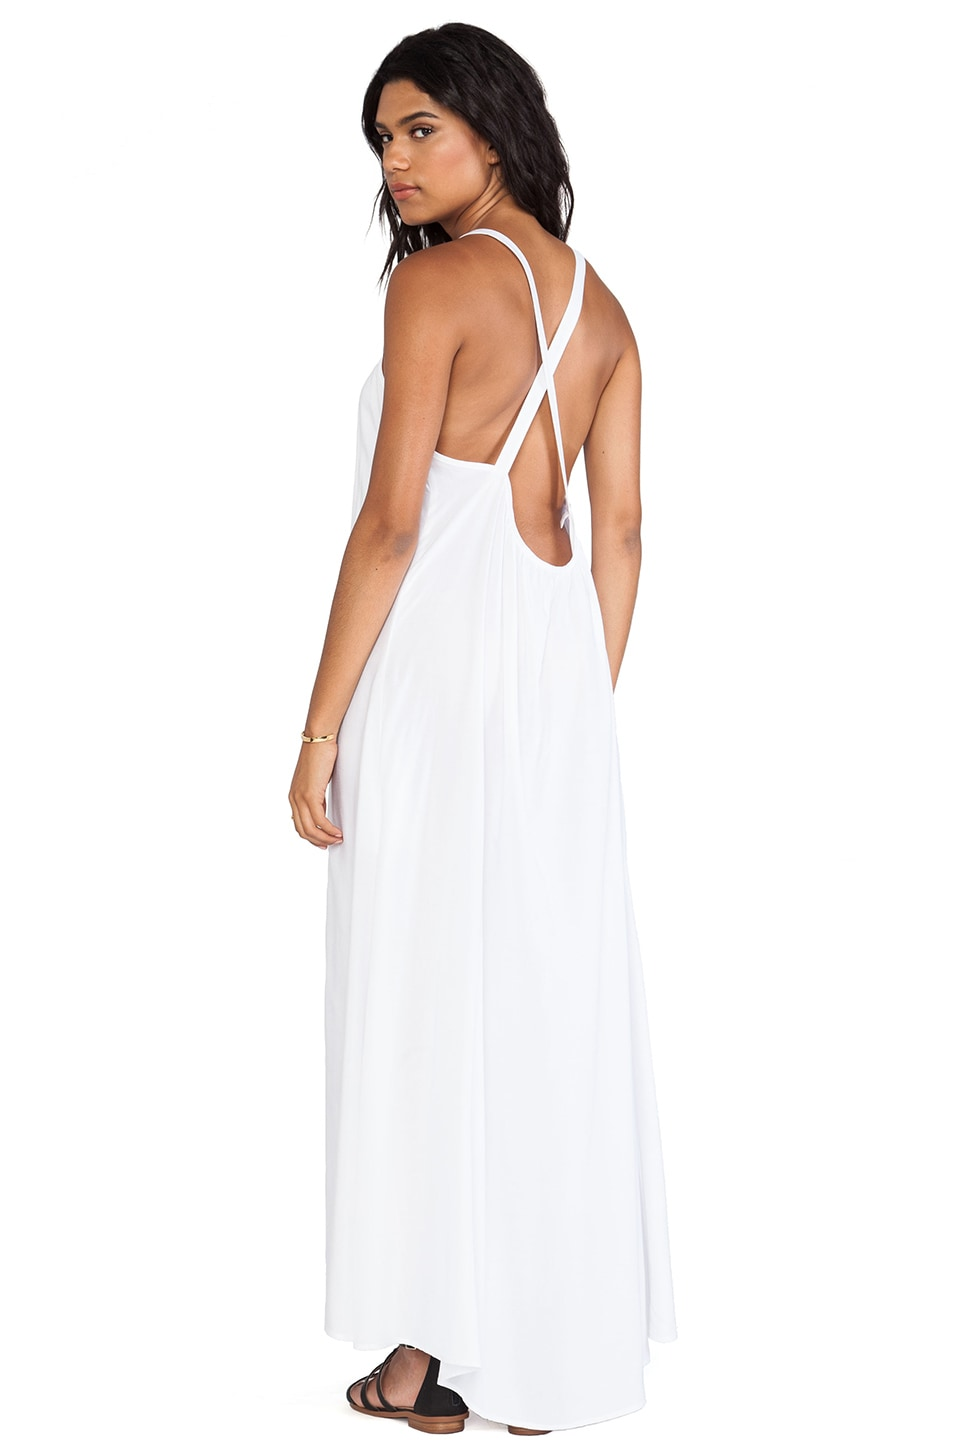 Tysa Leigh Dress in White